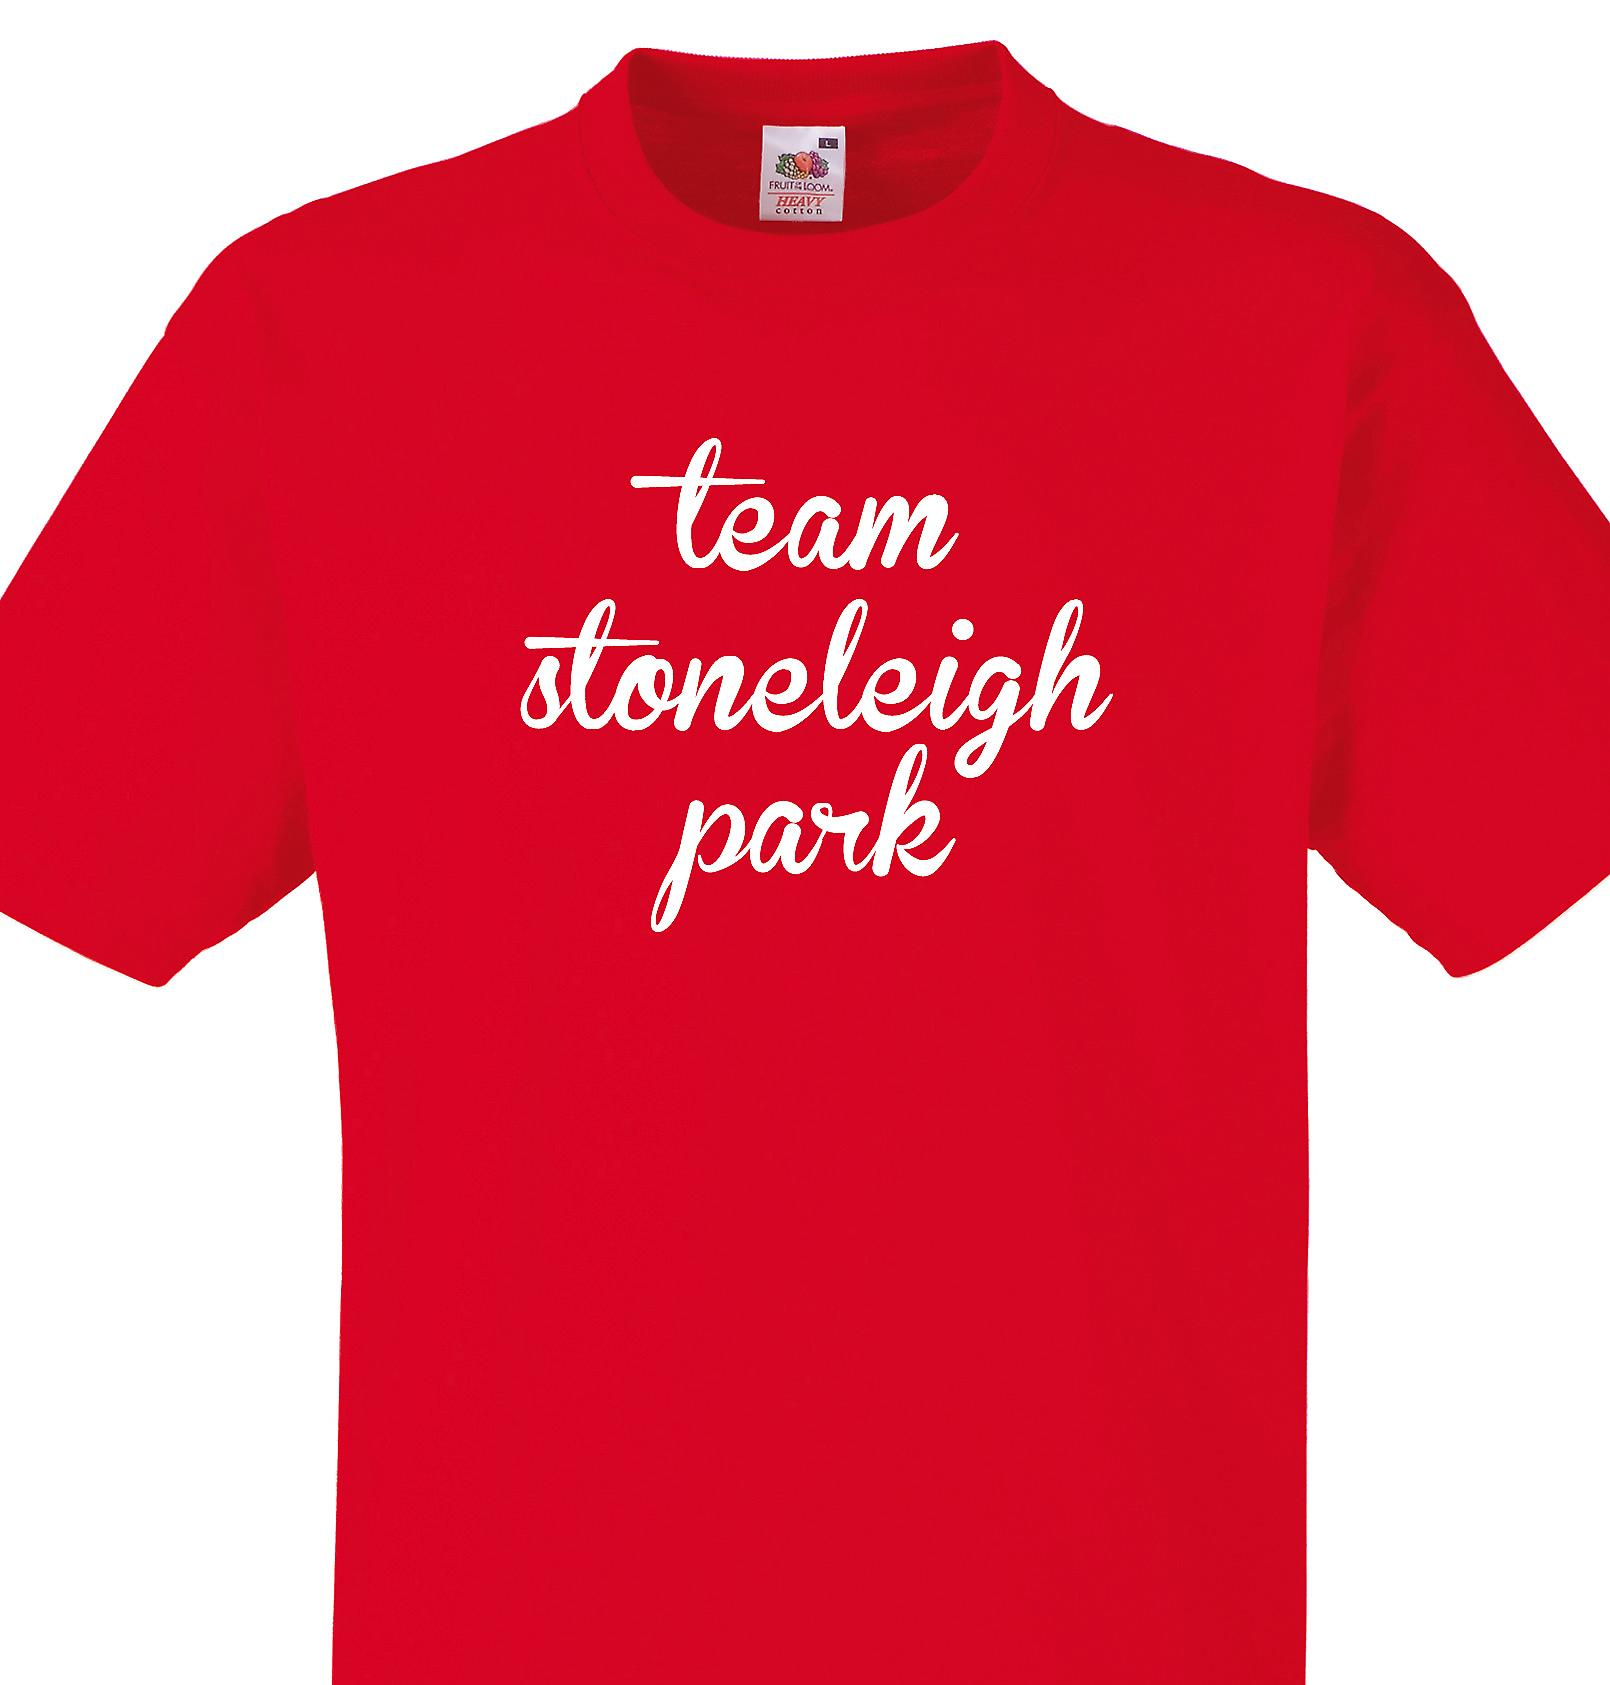 Team Stoneleigh park Red T shirt